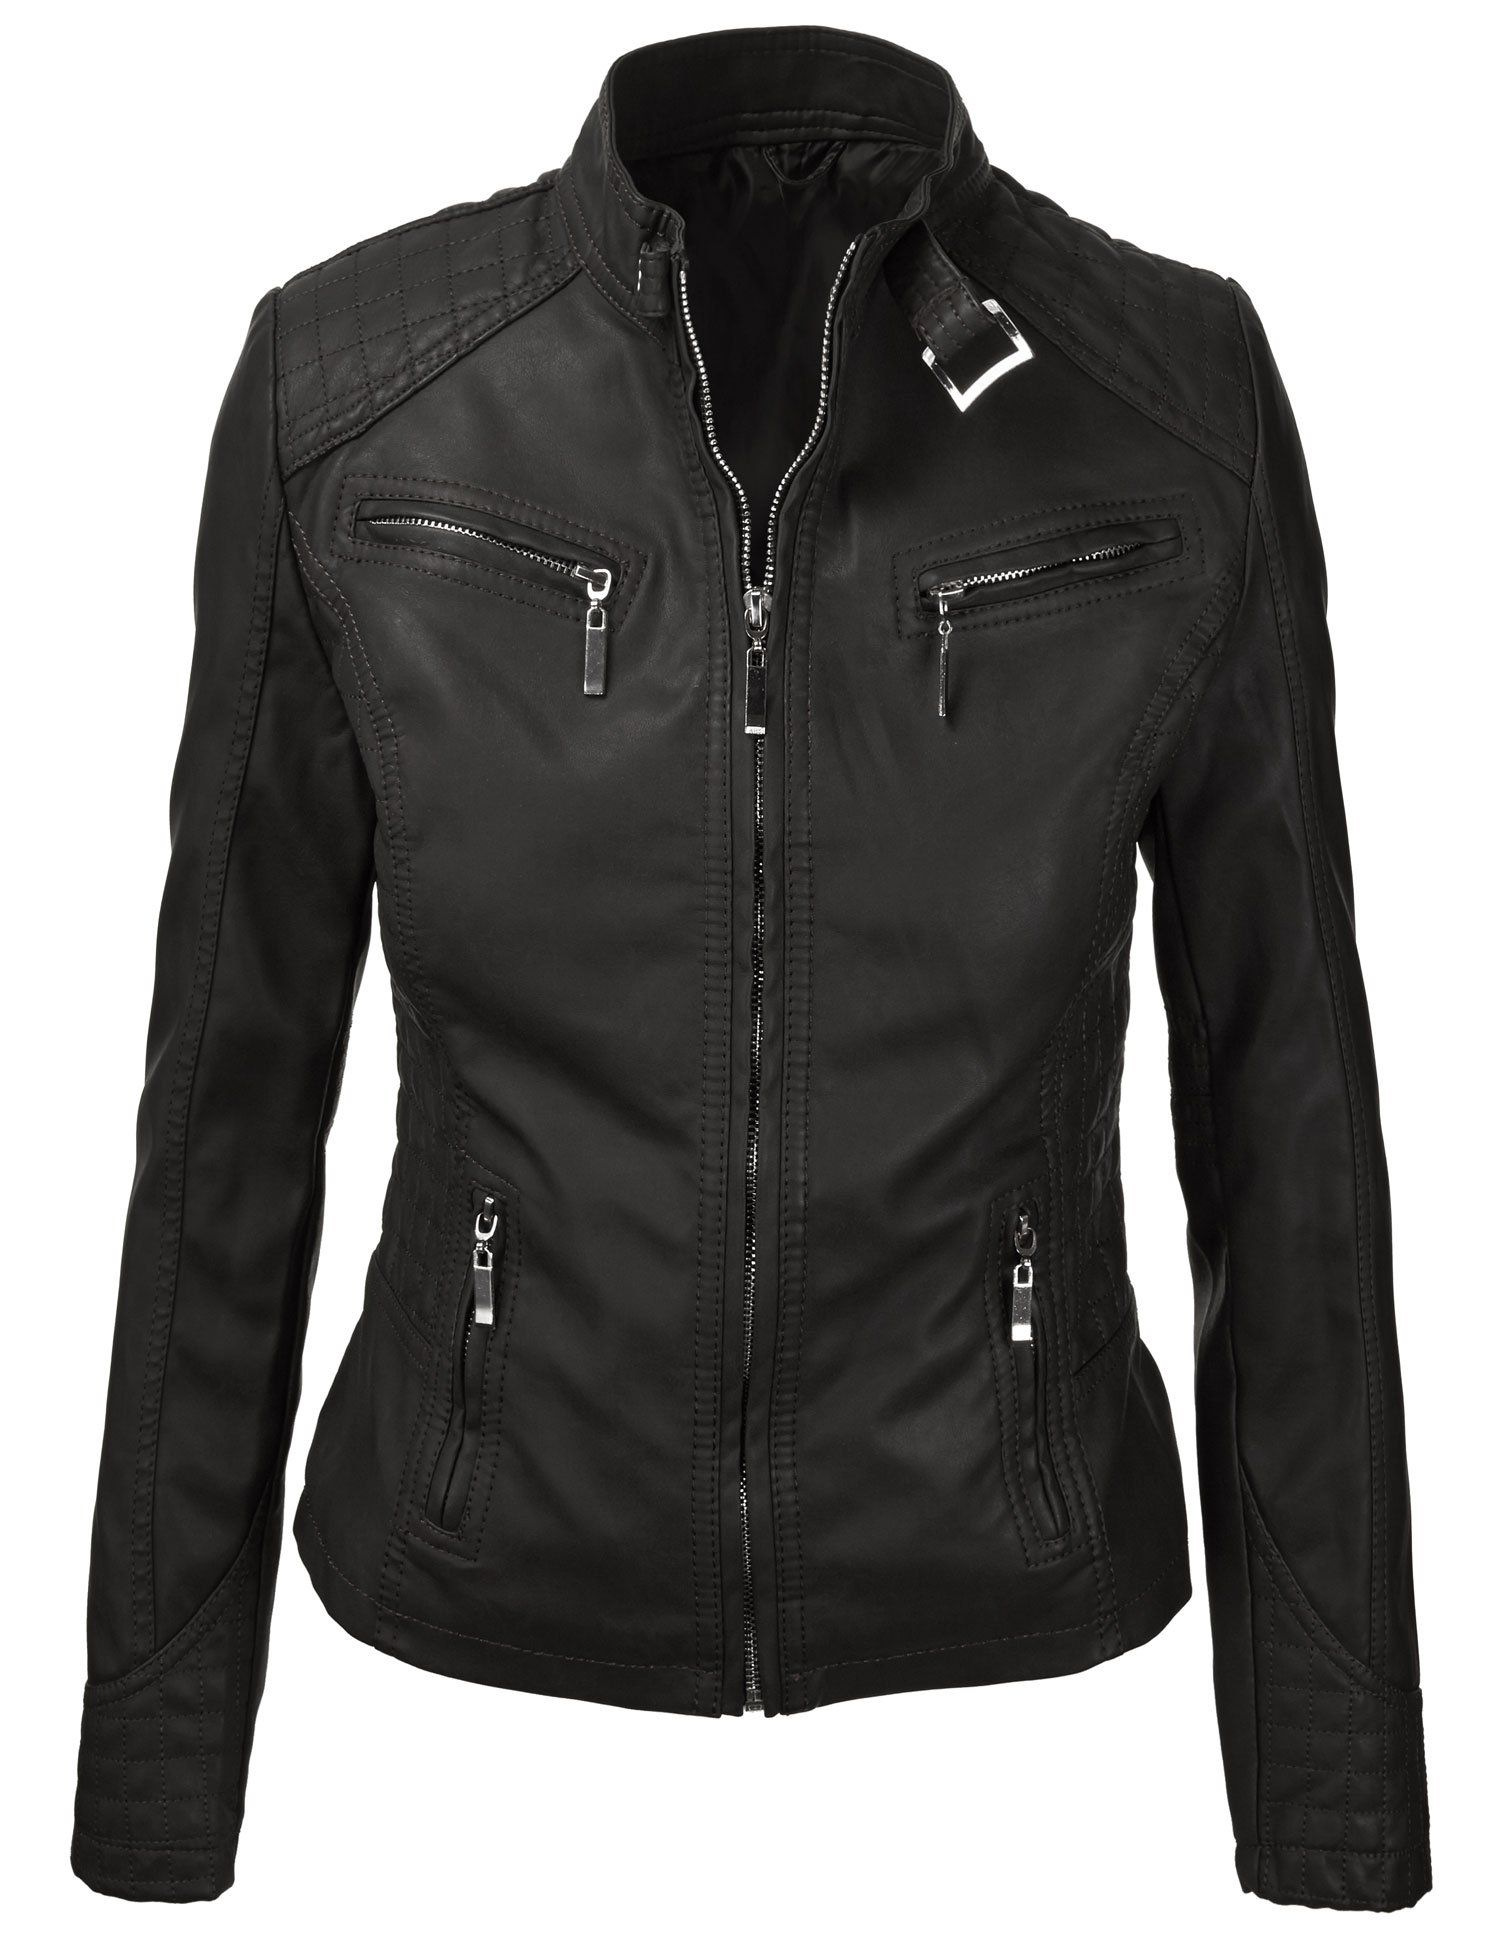 MBJ Womens Panelled Faux Leather Moto Jacket 29.95